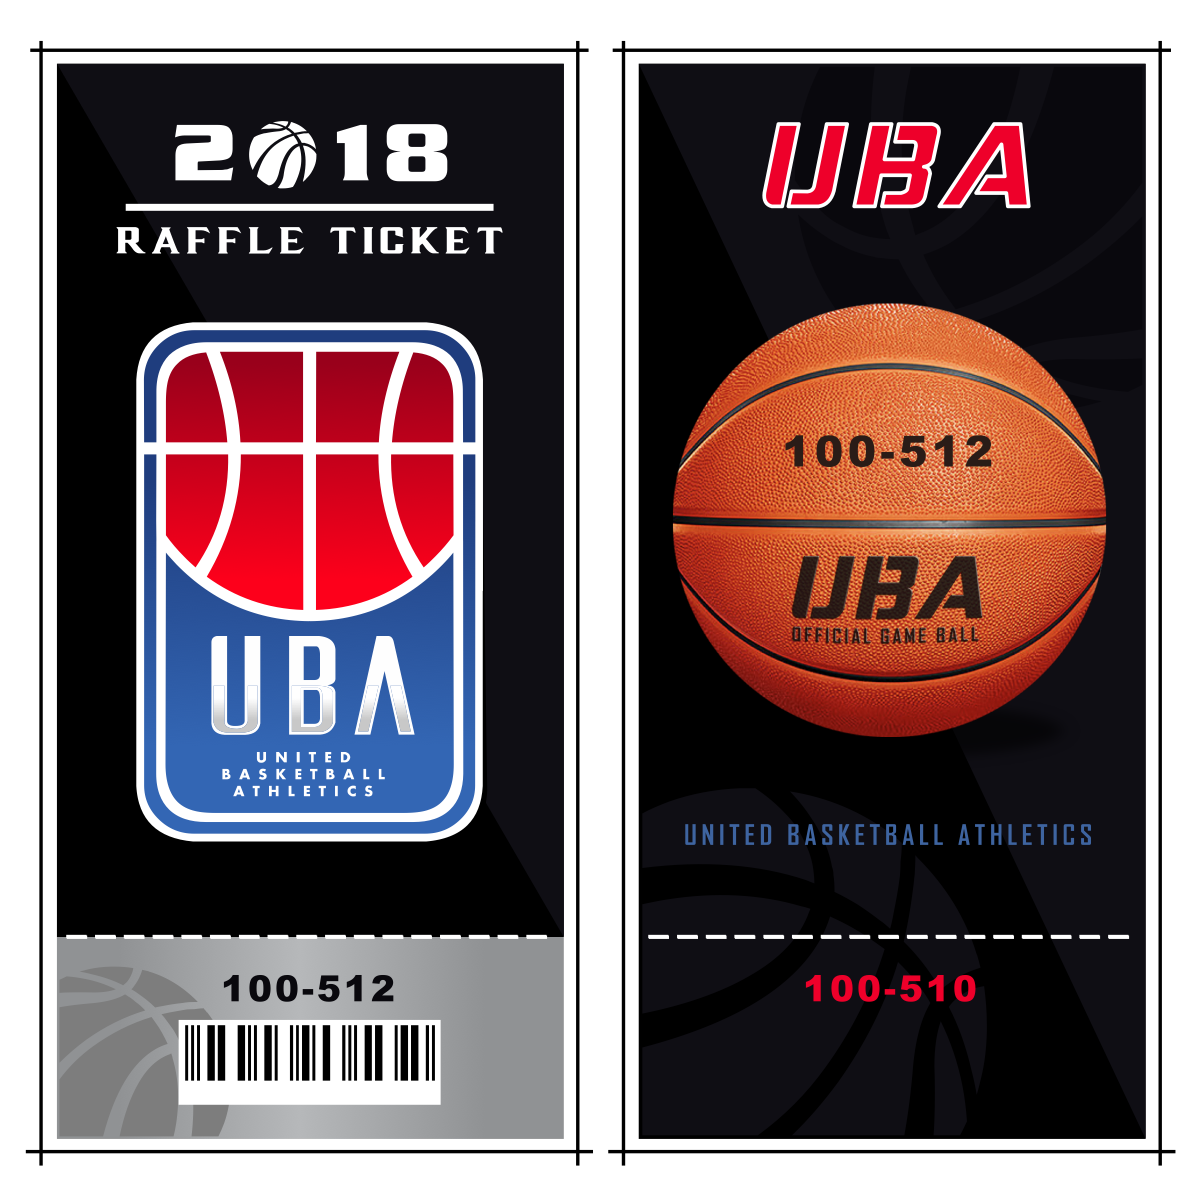 Ticket designs for UBA